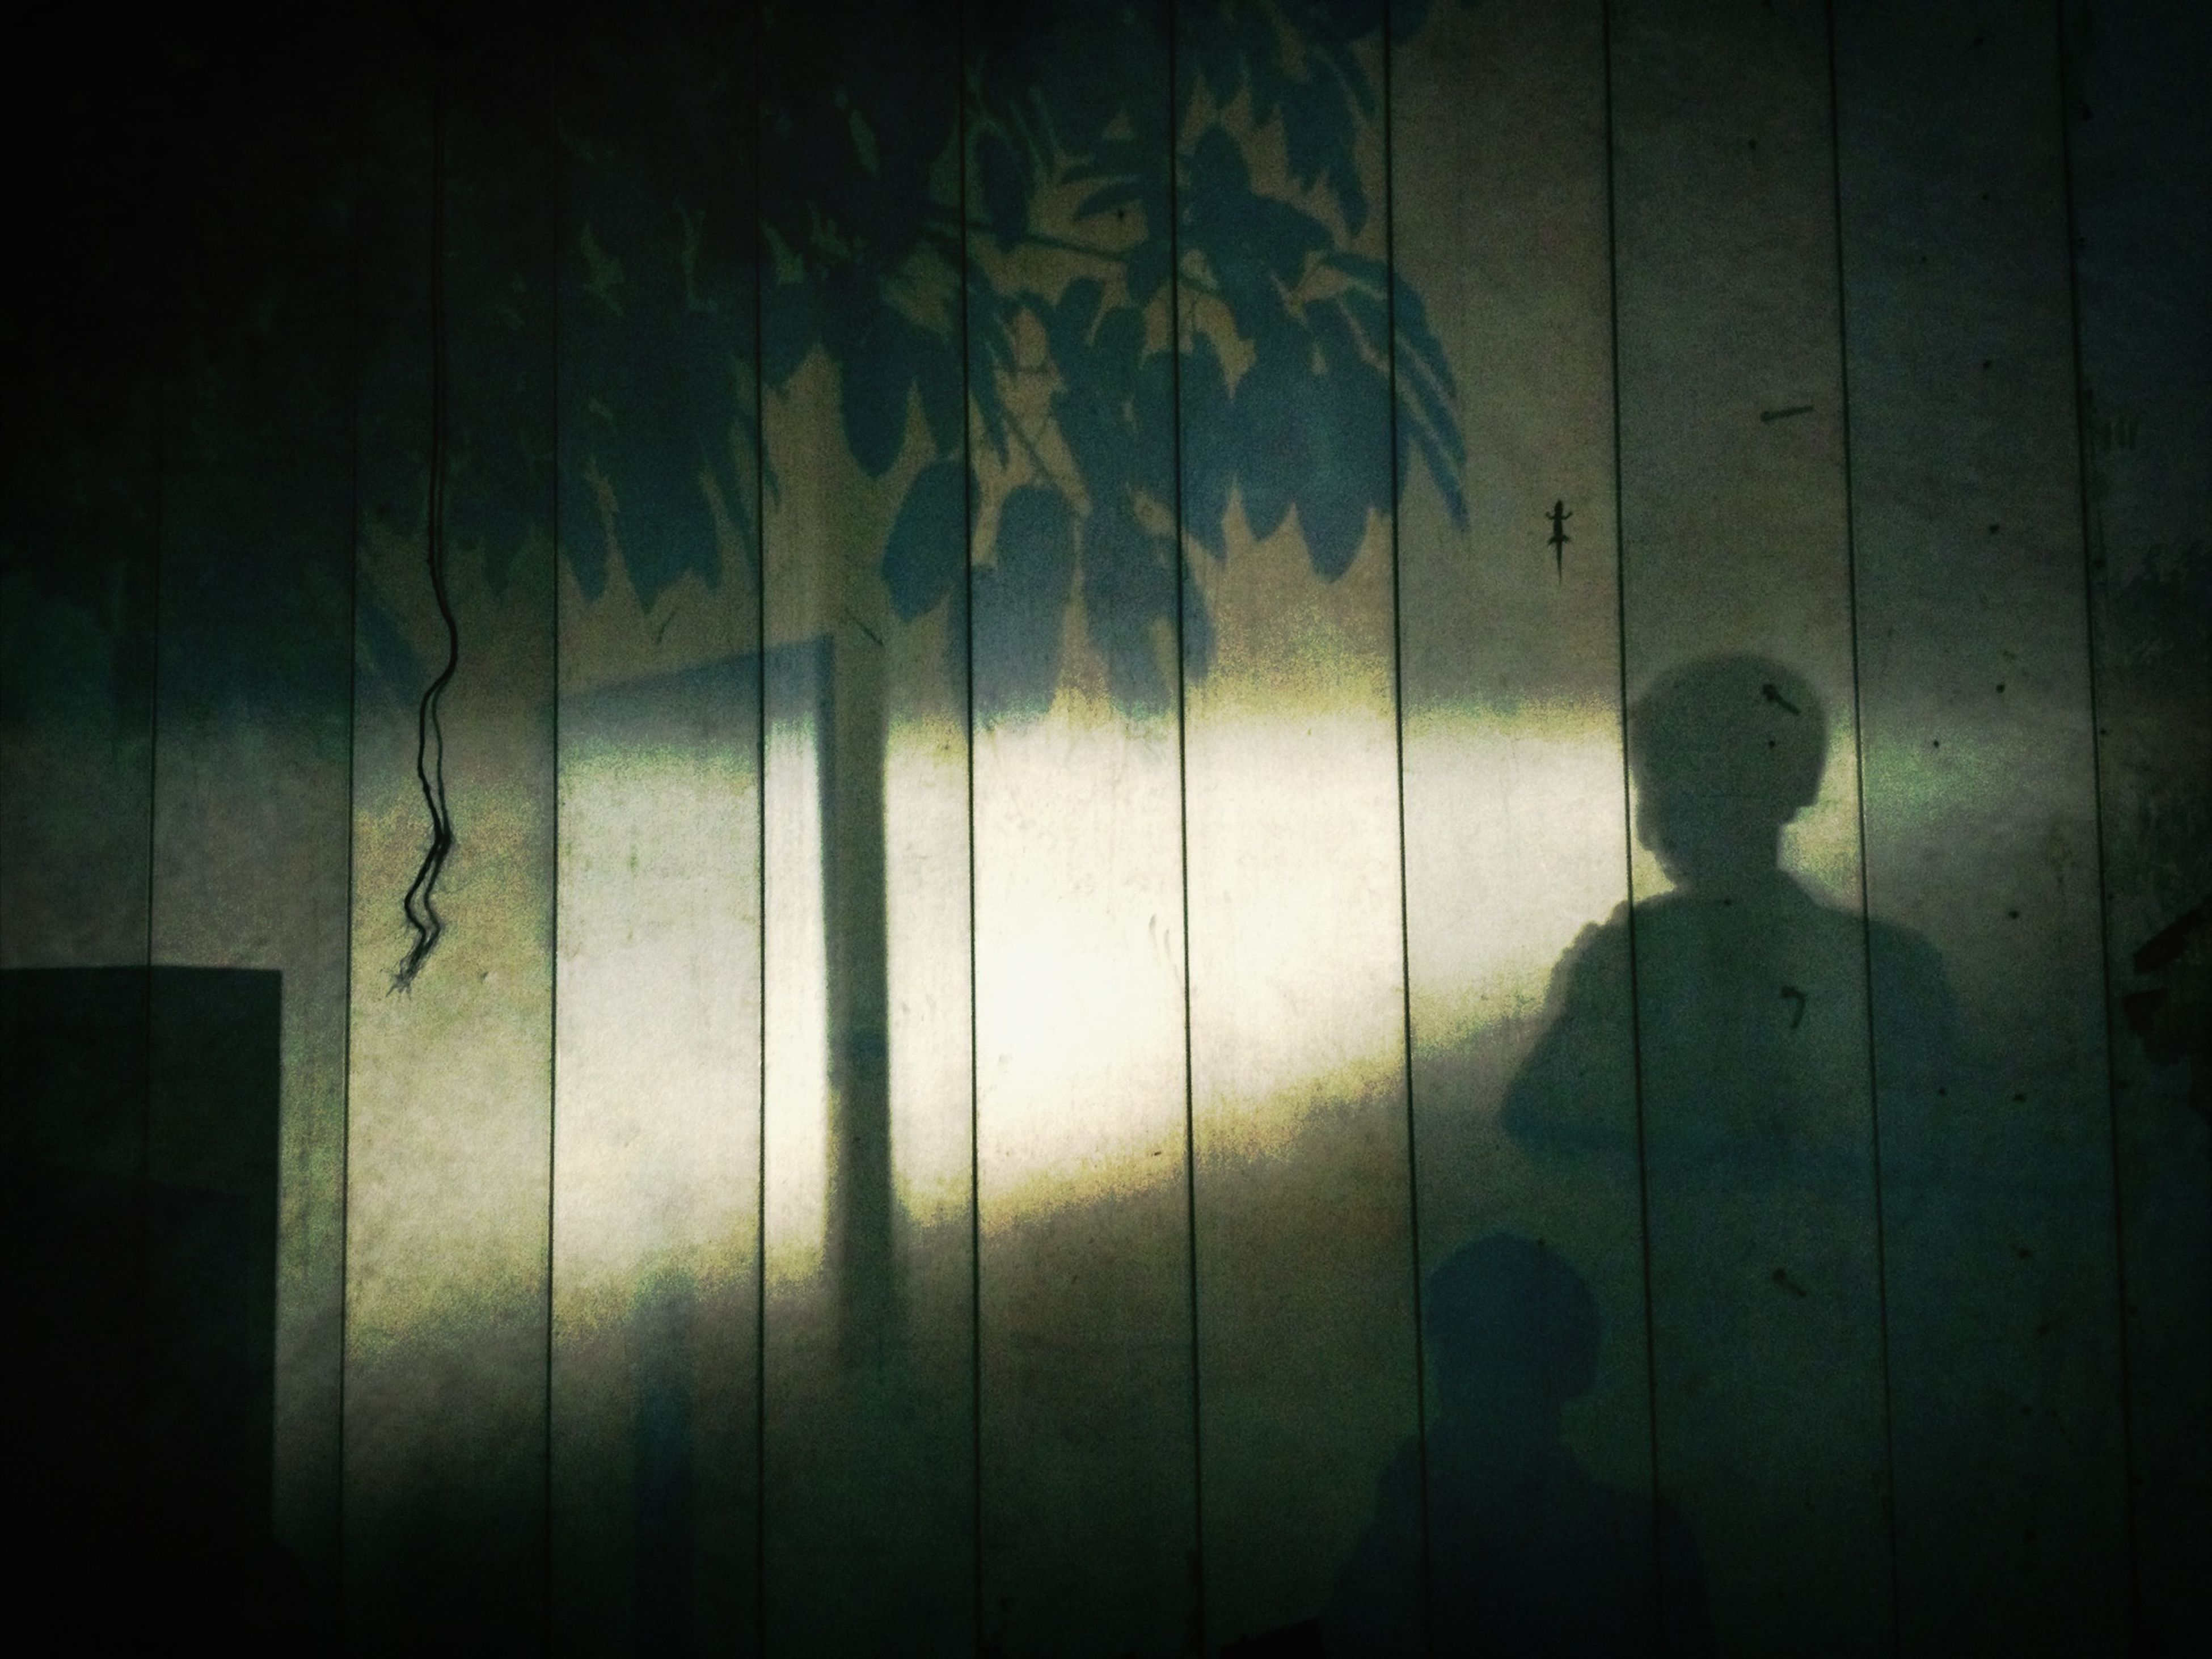 silhouette, shadow, wall - building feature, night, indoors, built structure, focus on shadow, dark, wall, sunlight, architecture, door, outline, standing, closed, wood - material